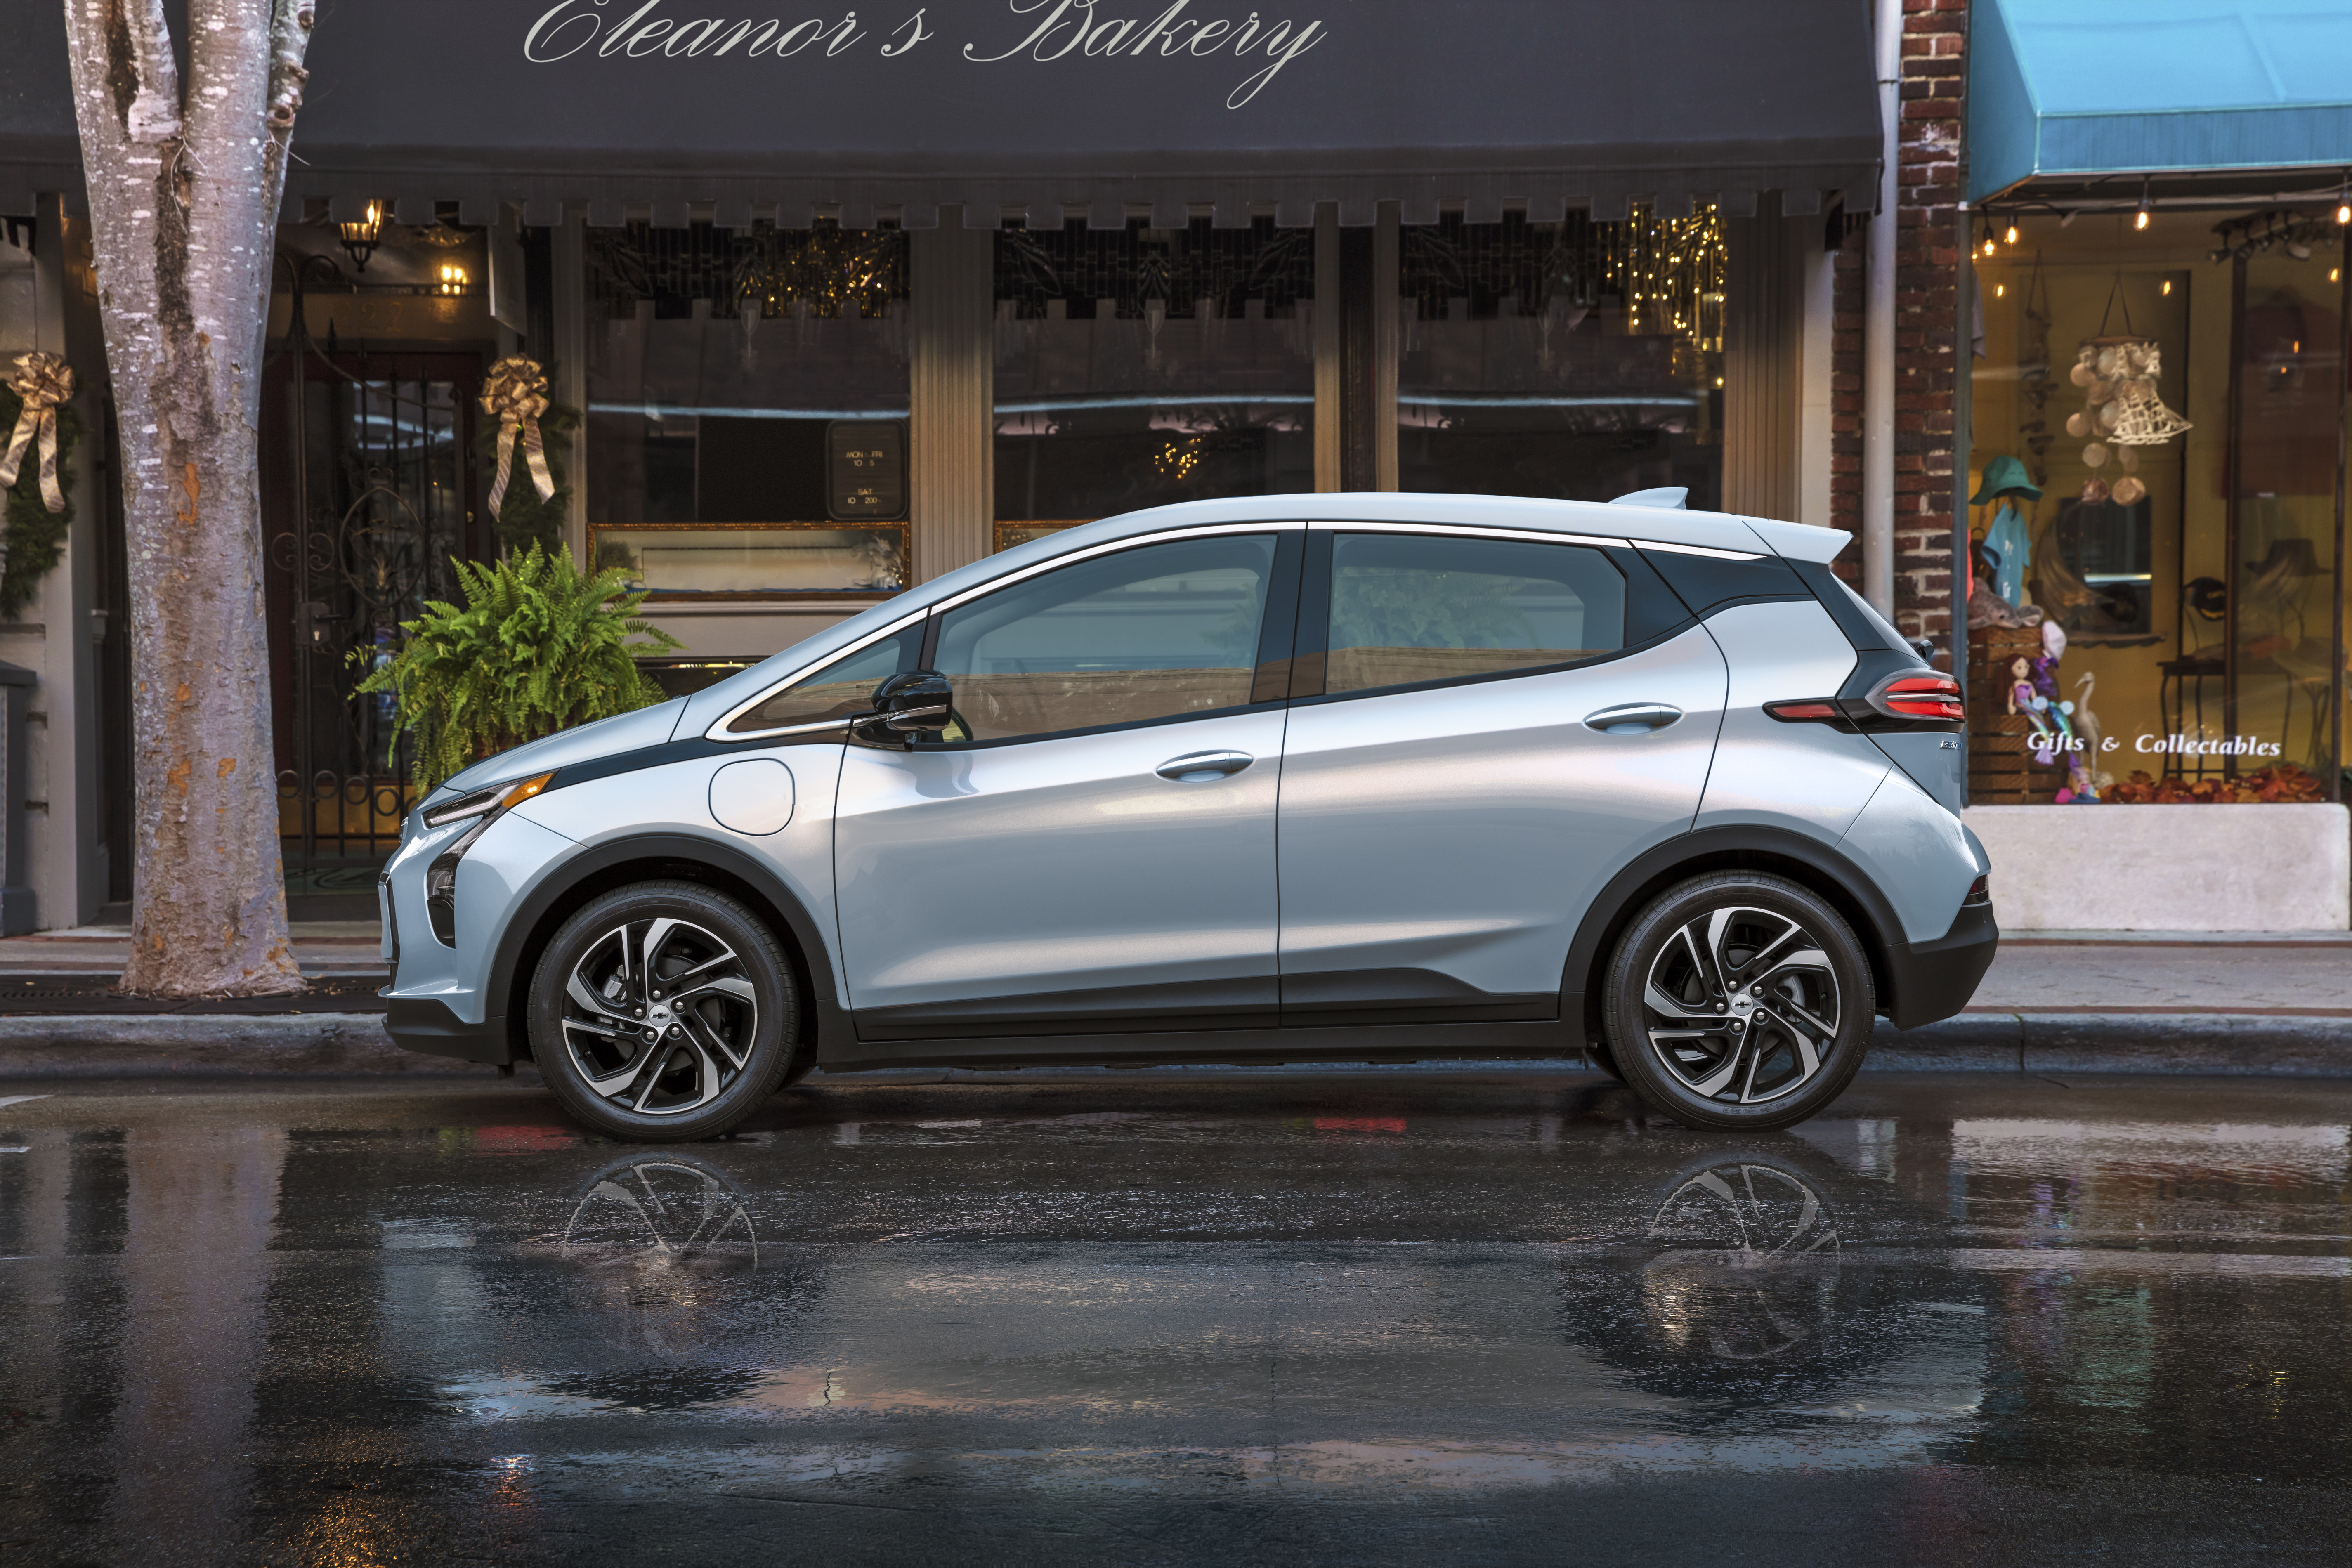 2022 Chevrolet Bolt EV  GM unveils a refreshed Chevy Bolt EV and its bigger, yet compact crossover sibling – TechCrunch 2022 Chevrolet BoltEV 005